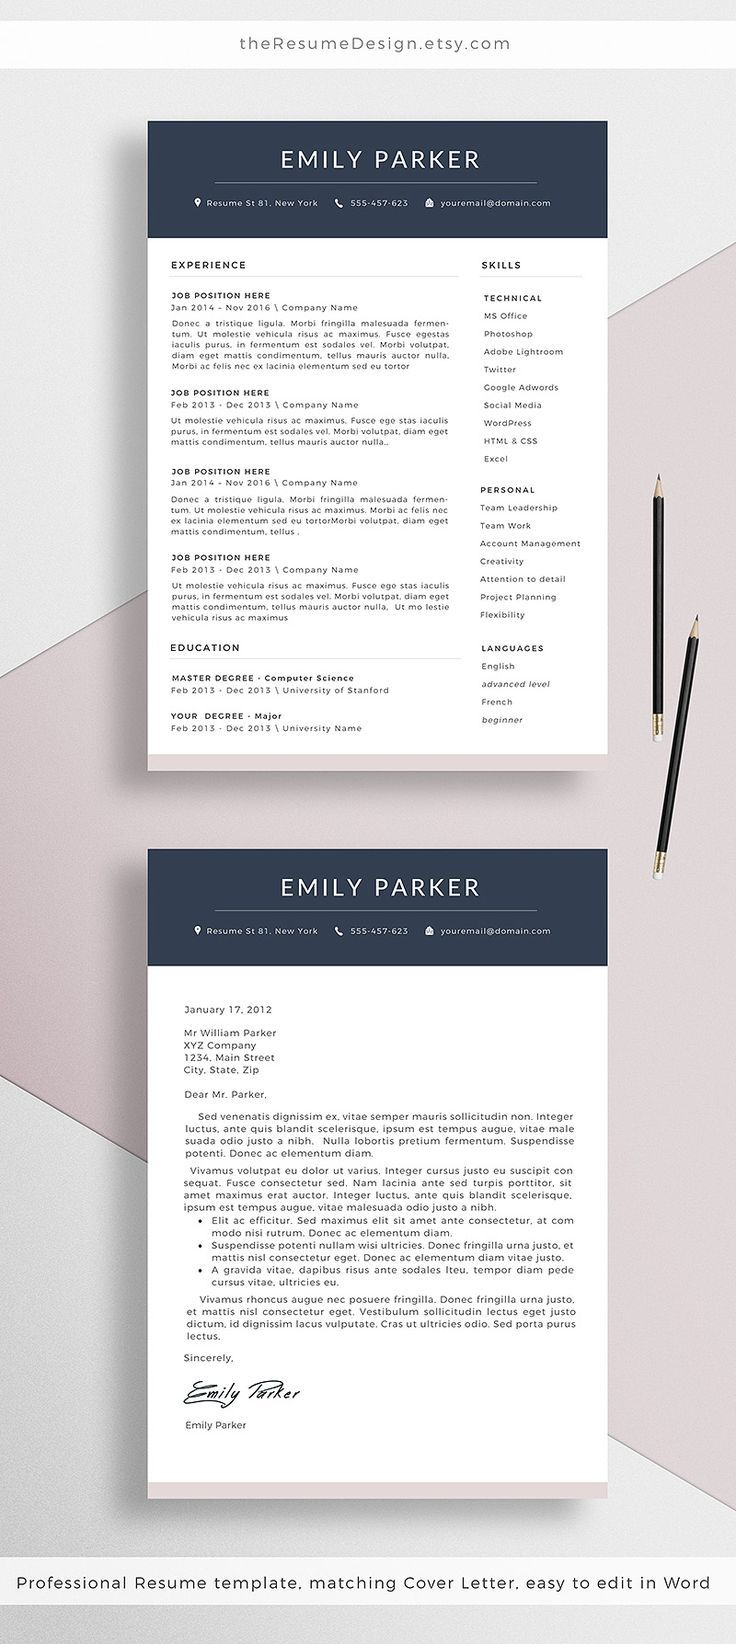 Our NEW #professional #Resume #Template + Cover Letter Foru2026